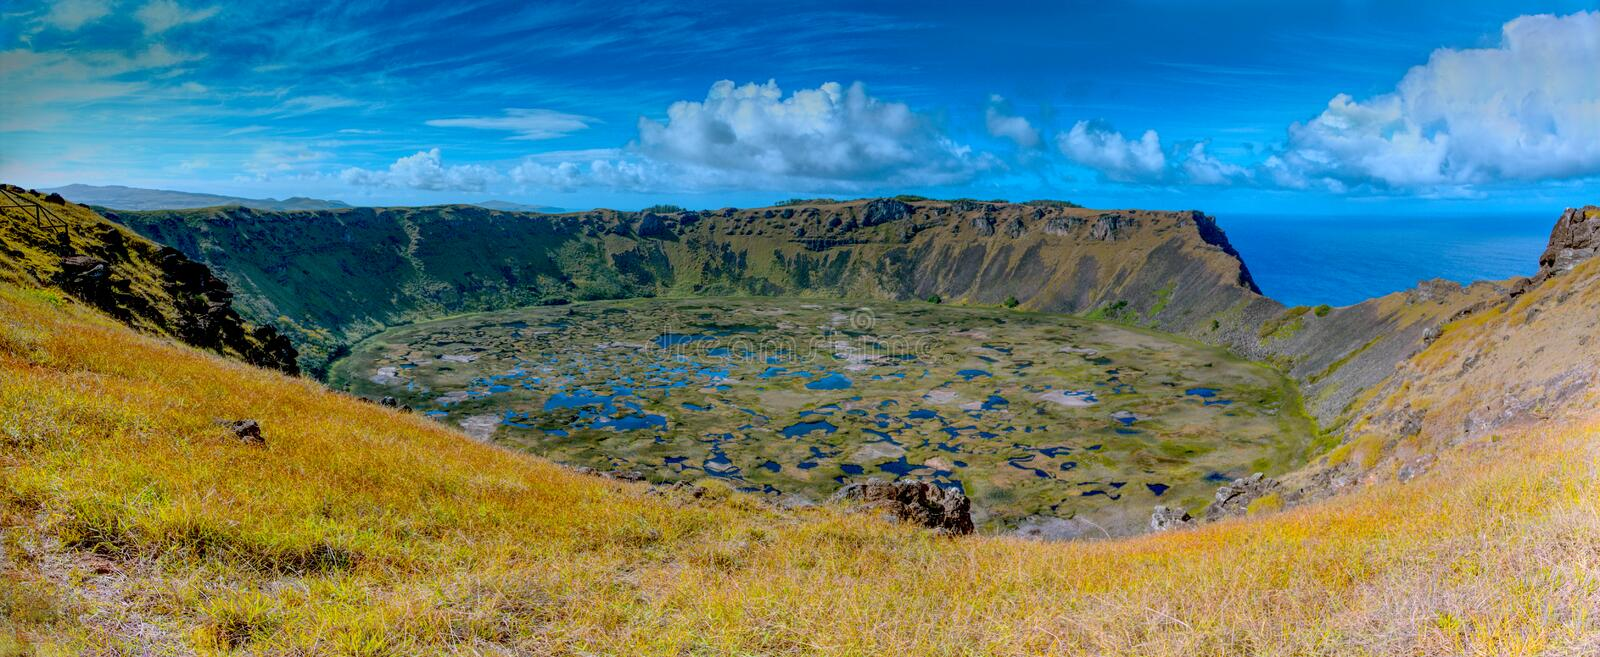 Ranu Kau Crater on Easter Island. World Heritage Site of Rapa Nui National Park. A panoramic view of the Ranu Kau Crater and its wetlands below royalty free stock images